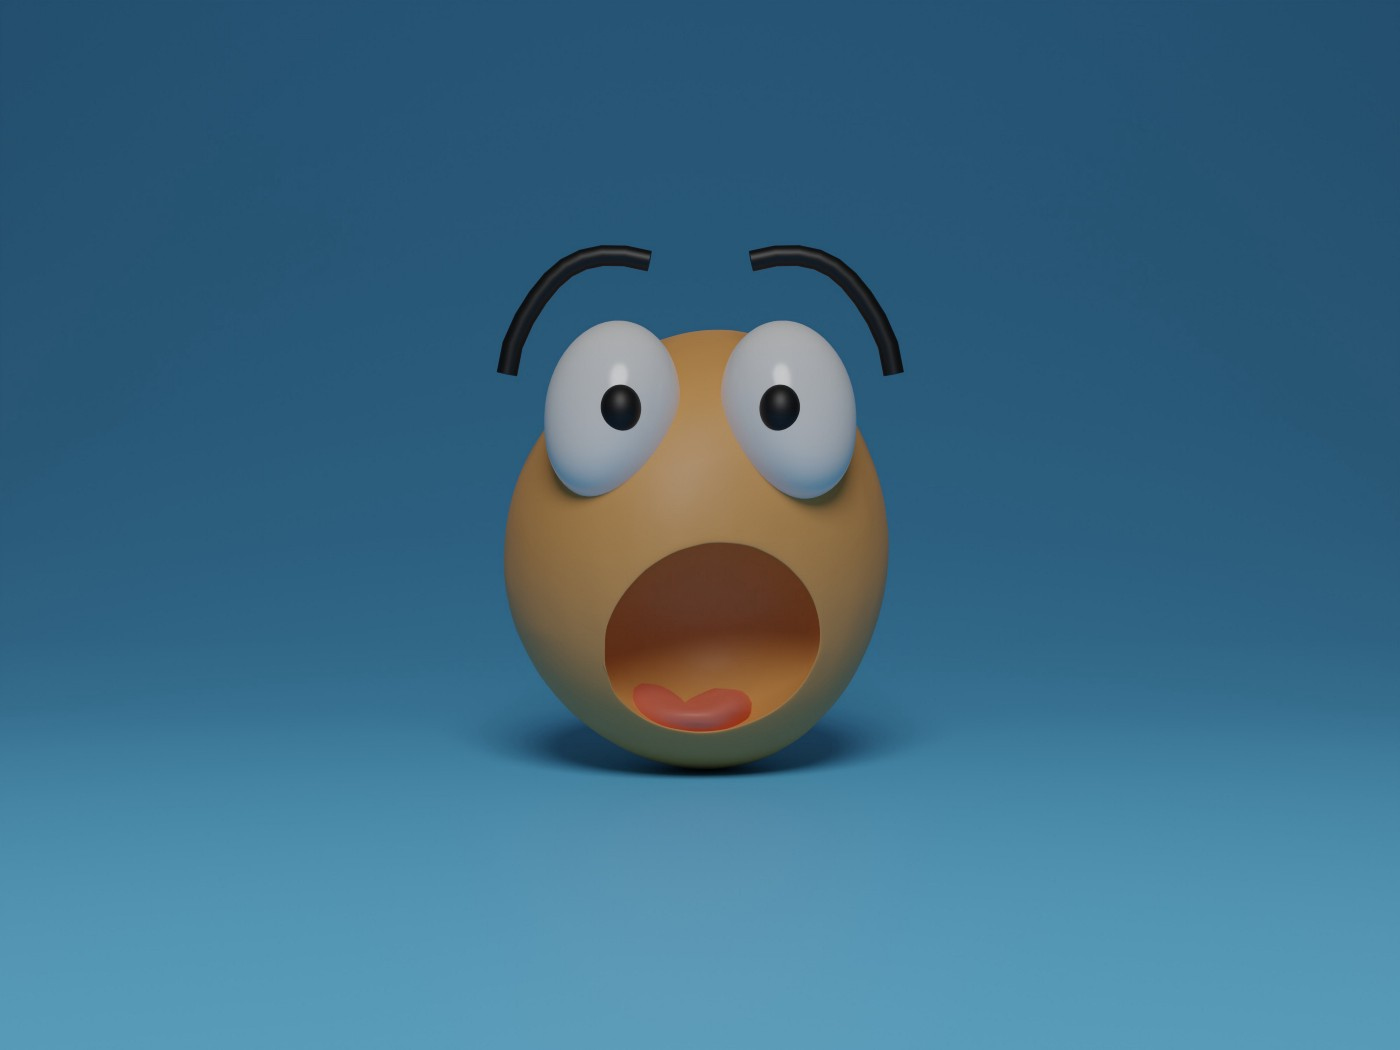 the image is that of a cartoon face that is showing great surprise. the eyes are bulging, the mouth open and the eyebrows are lifted off the head which looks like an egg